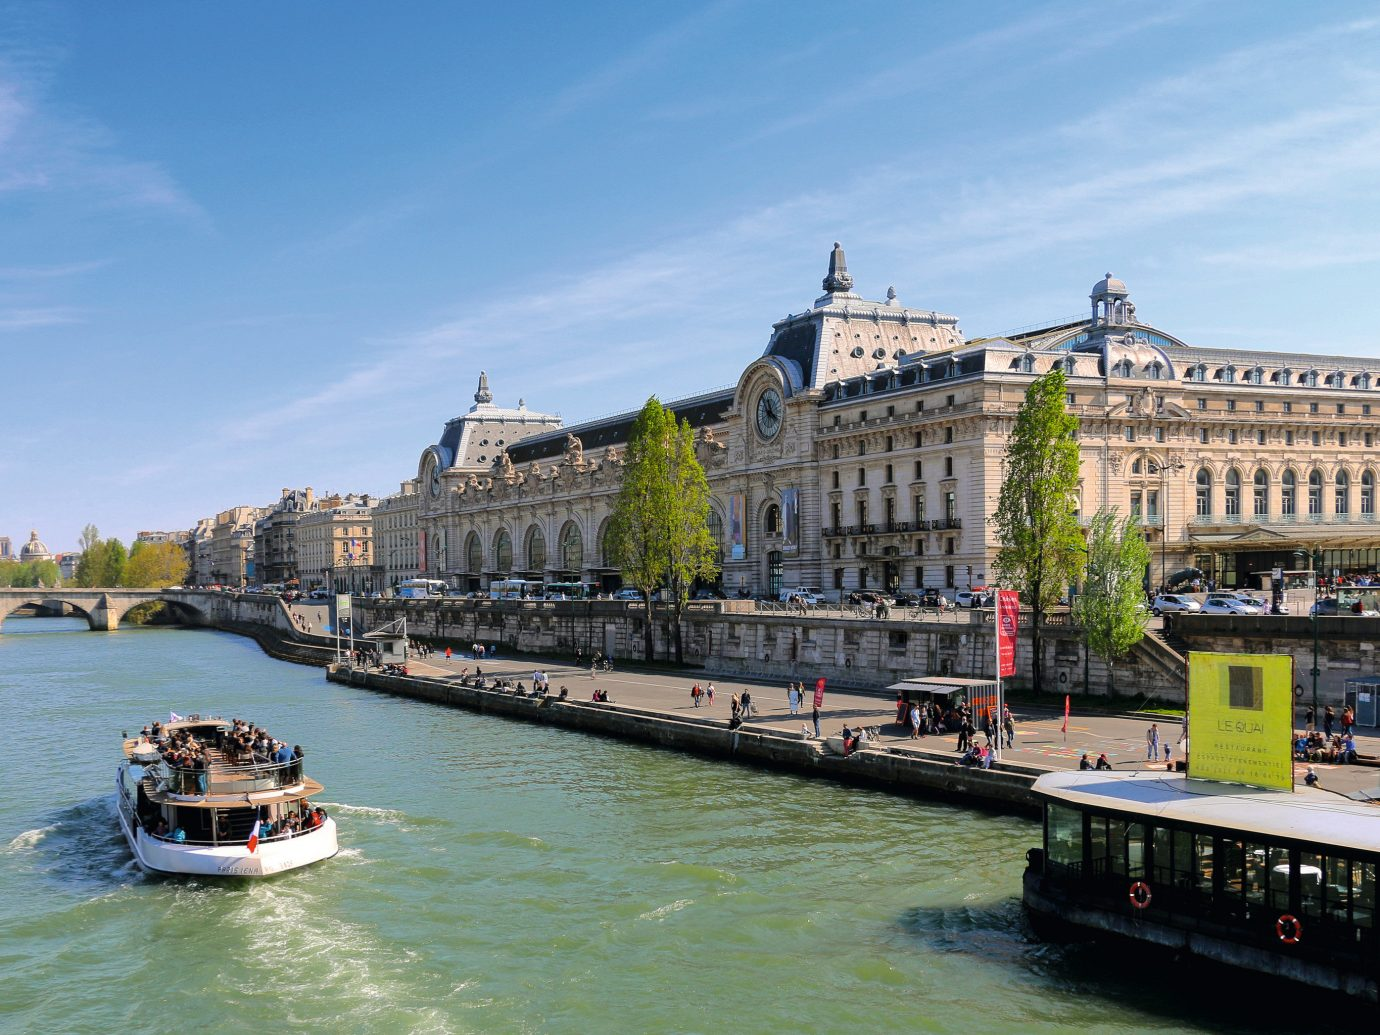 Romance Trip Ideas water outdoor sky Boat River landform scene transport vehicle body of water waterway Canal Harbor tourism vacation channel cityscape Sea traveling